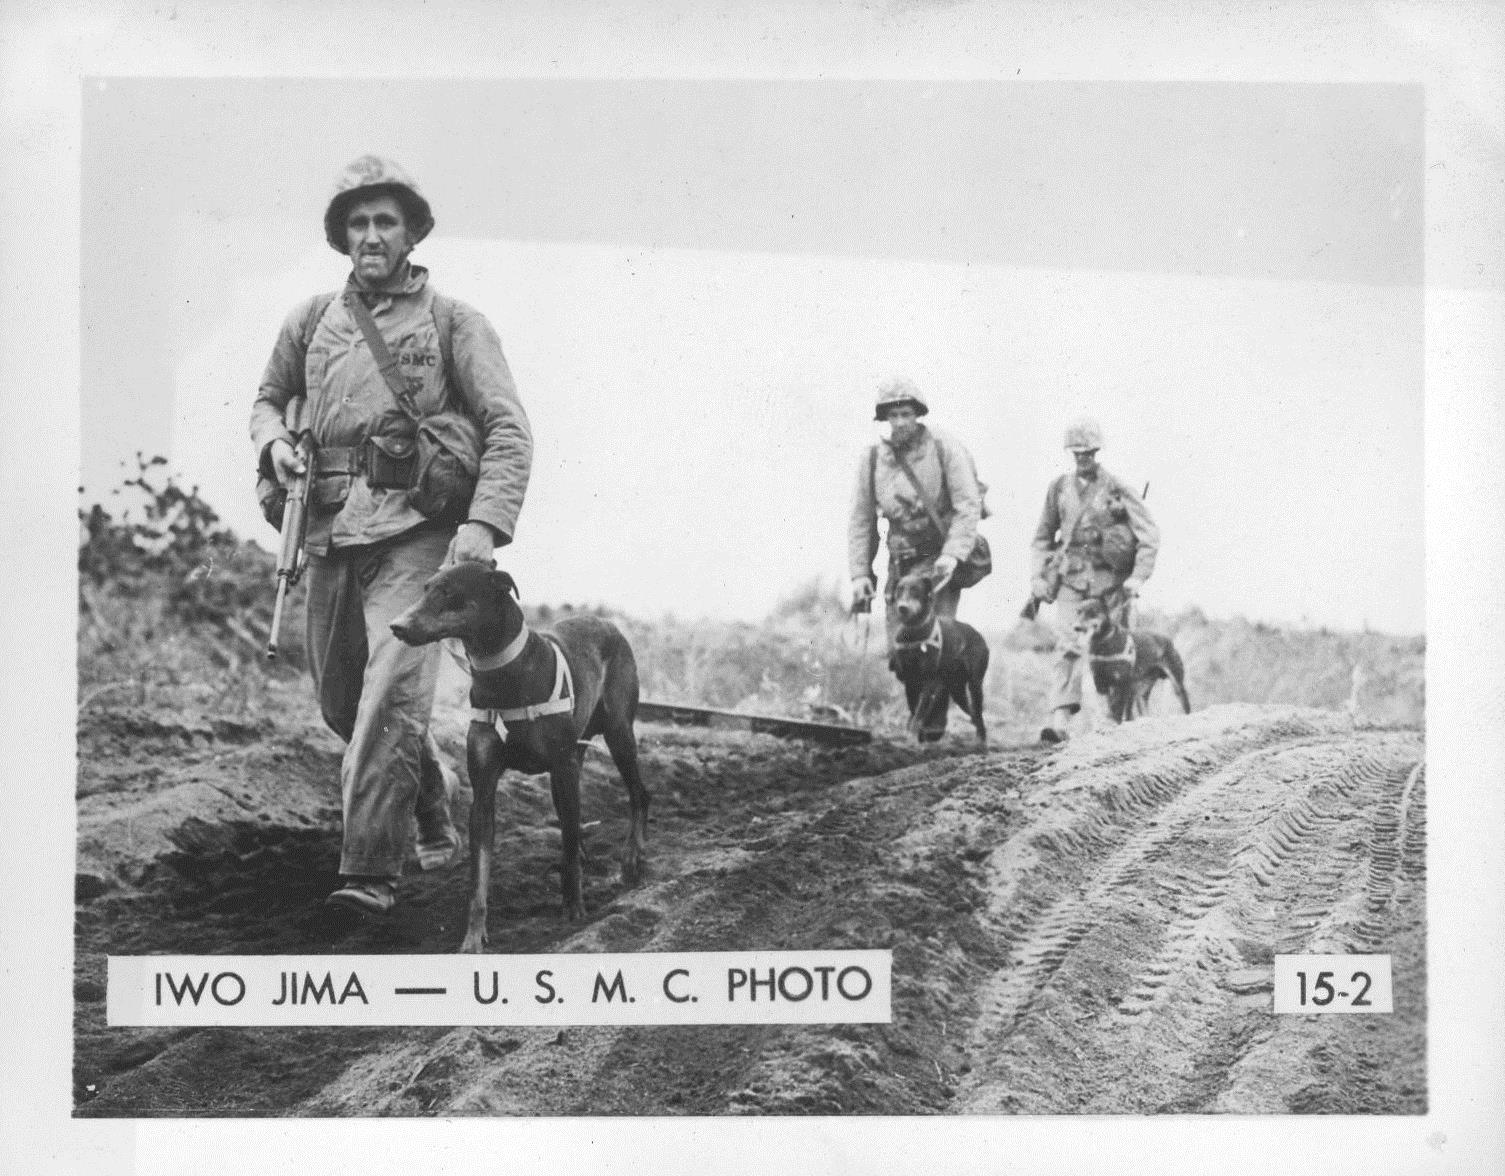 War dogs on Iwo